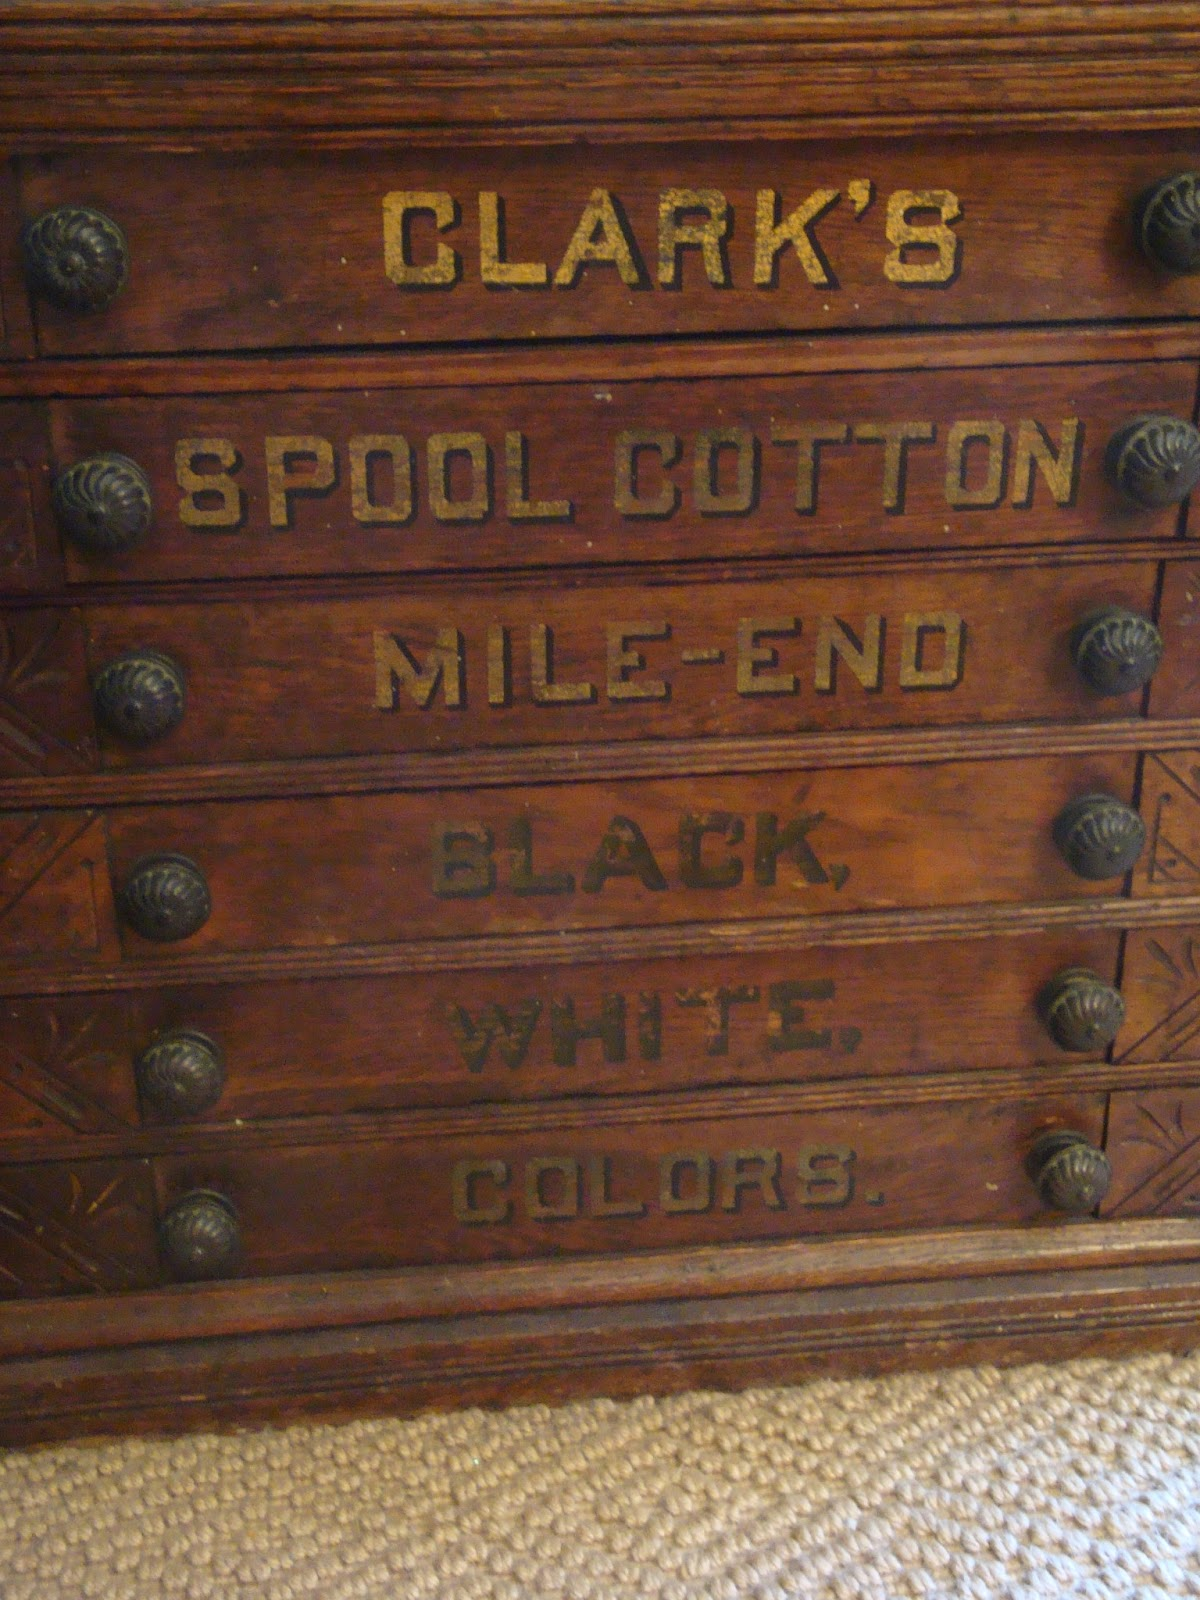 Antique Spool Chests - The Polohouse: Antique Spool Chests